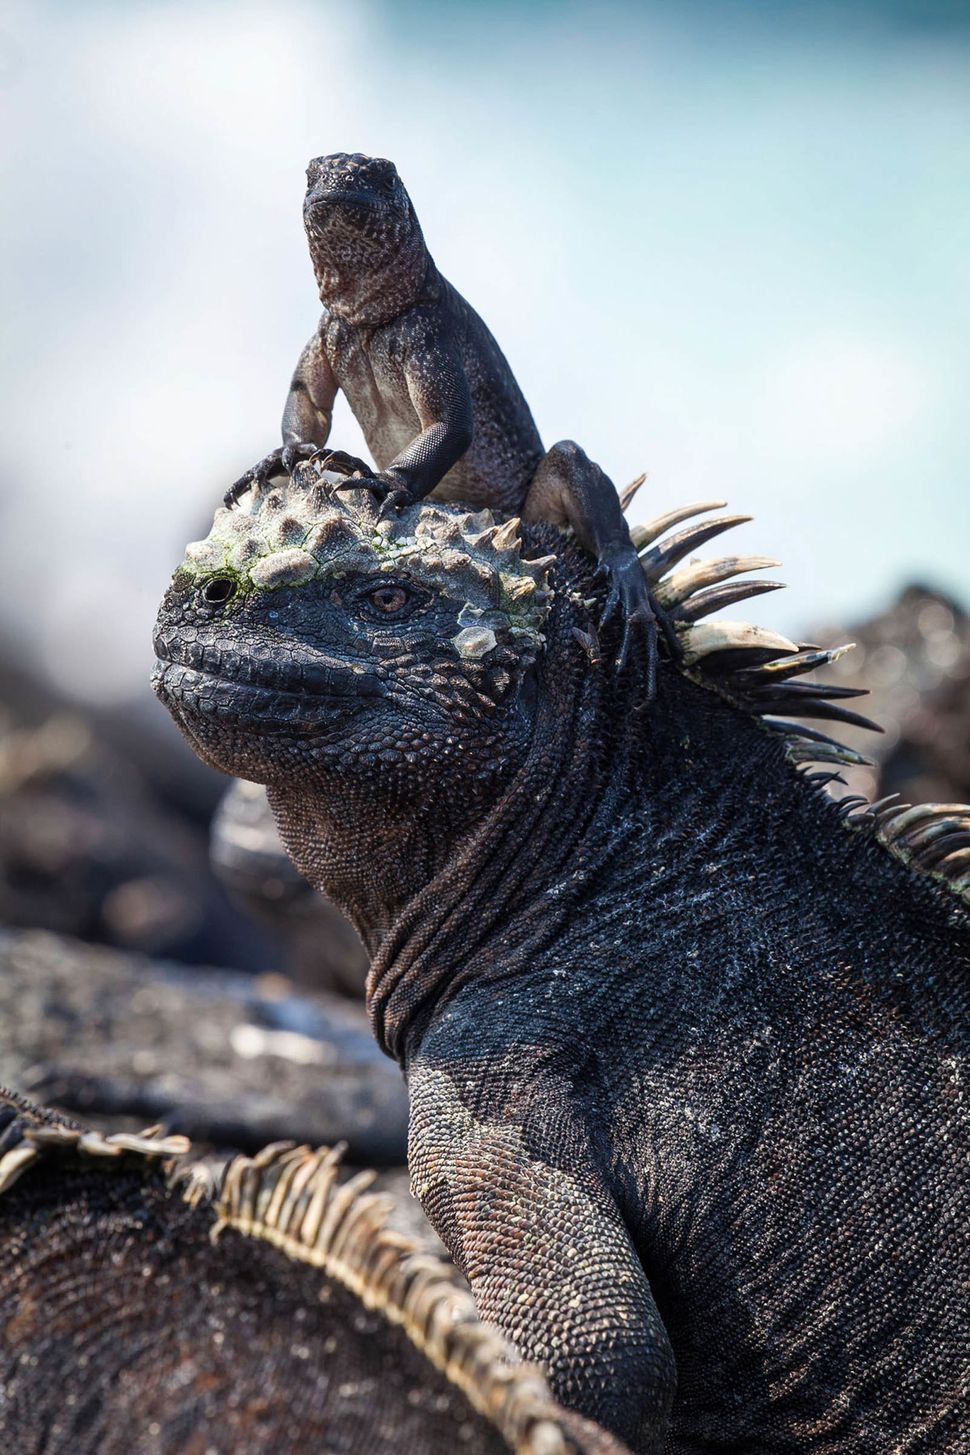 A marine iguana in the Galapagos Islands.